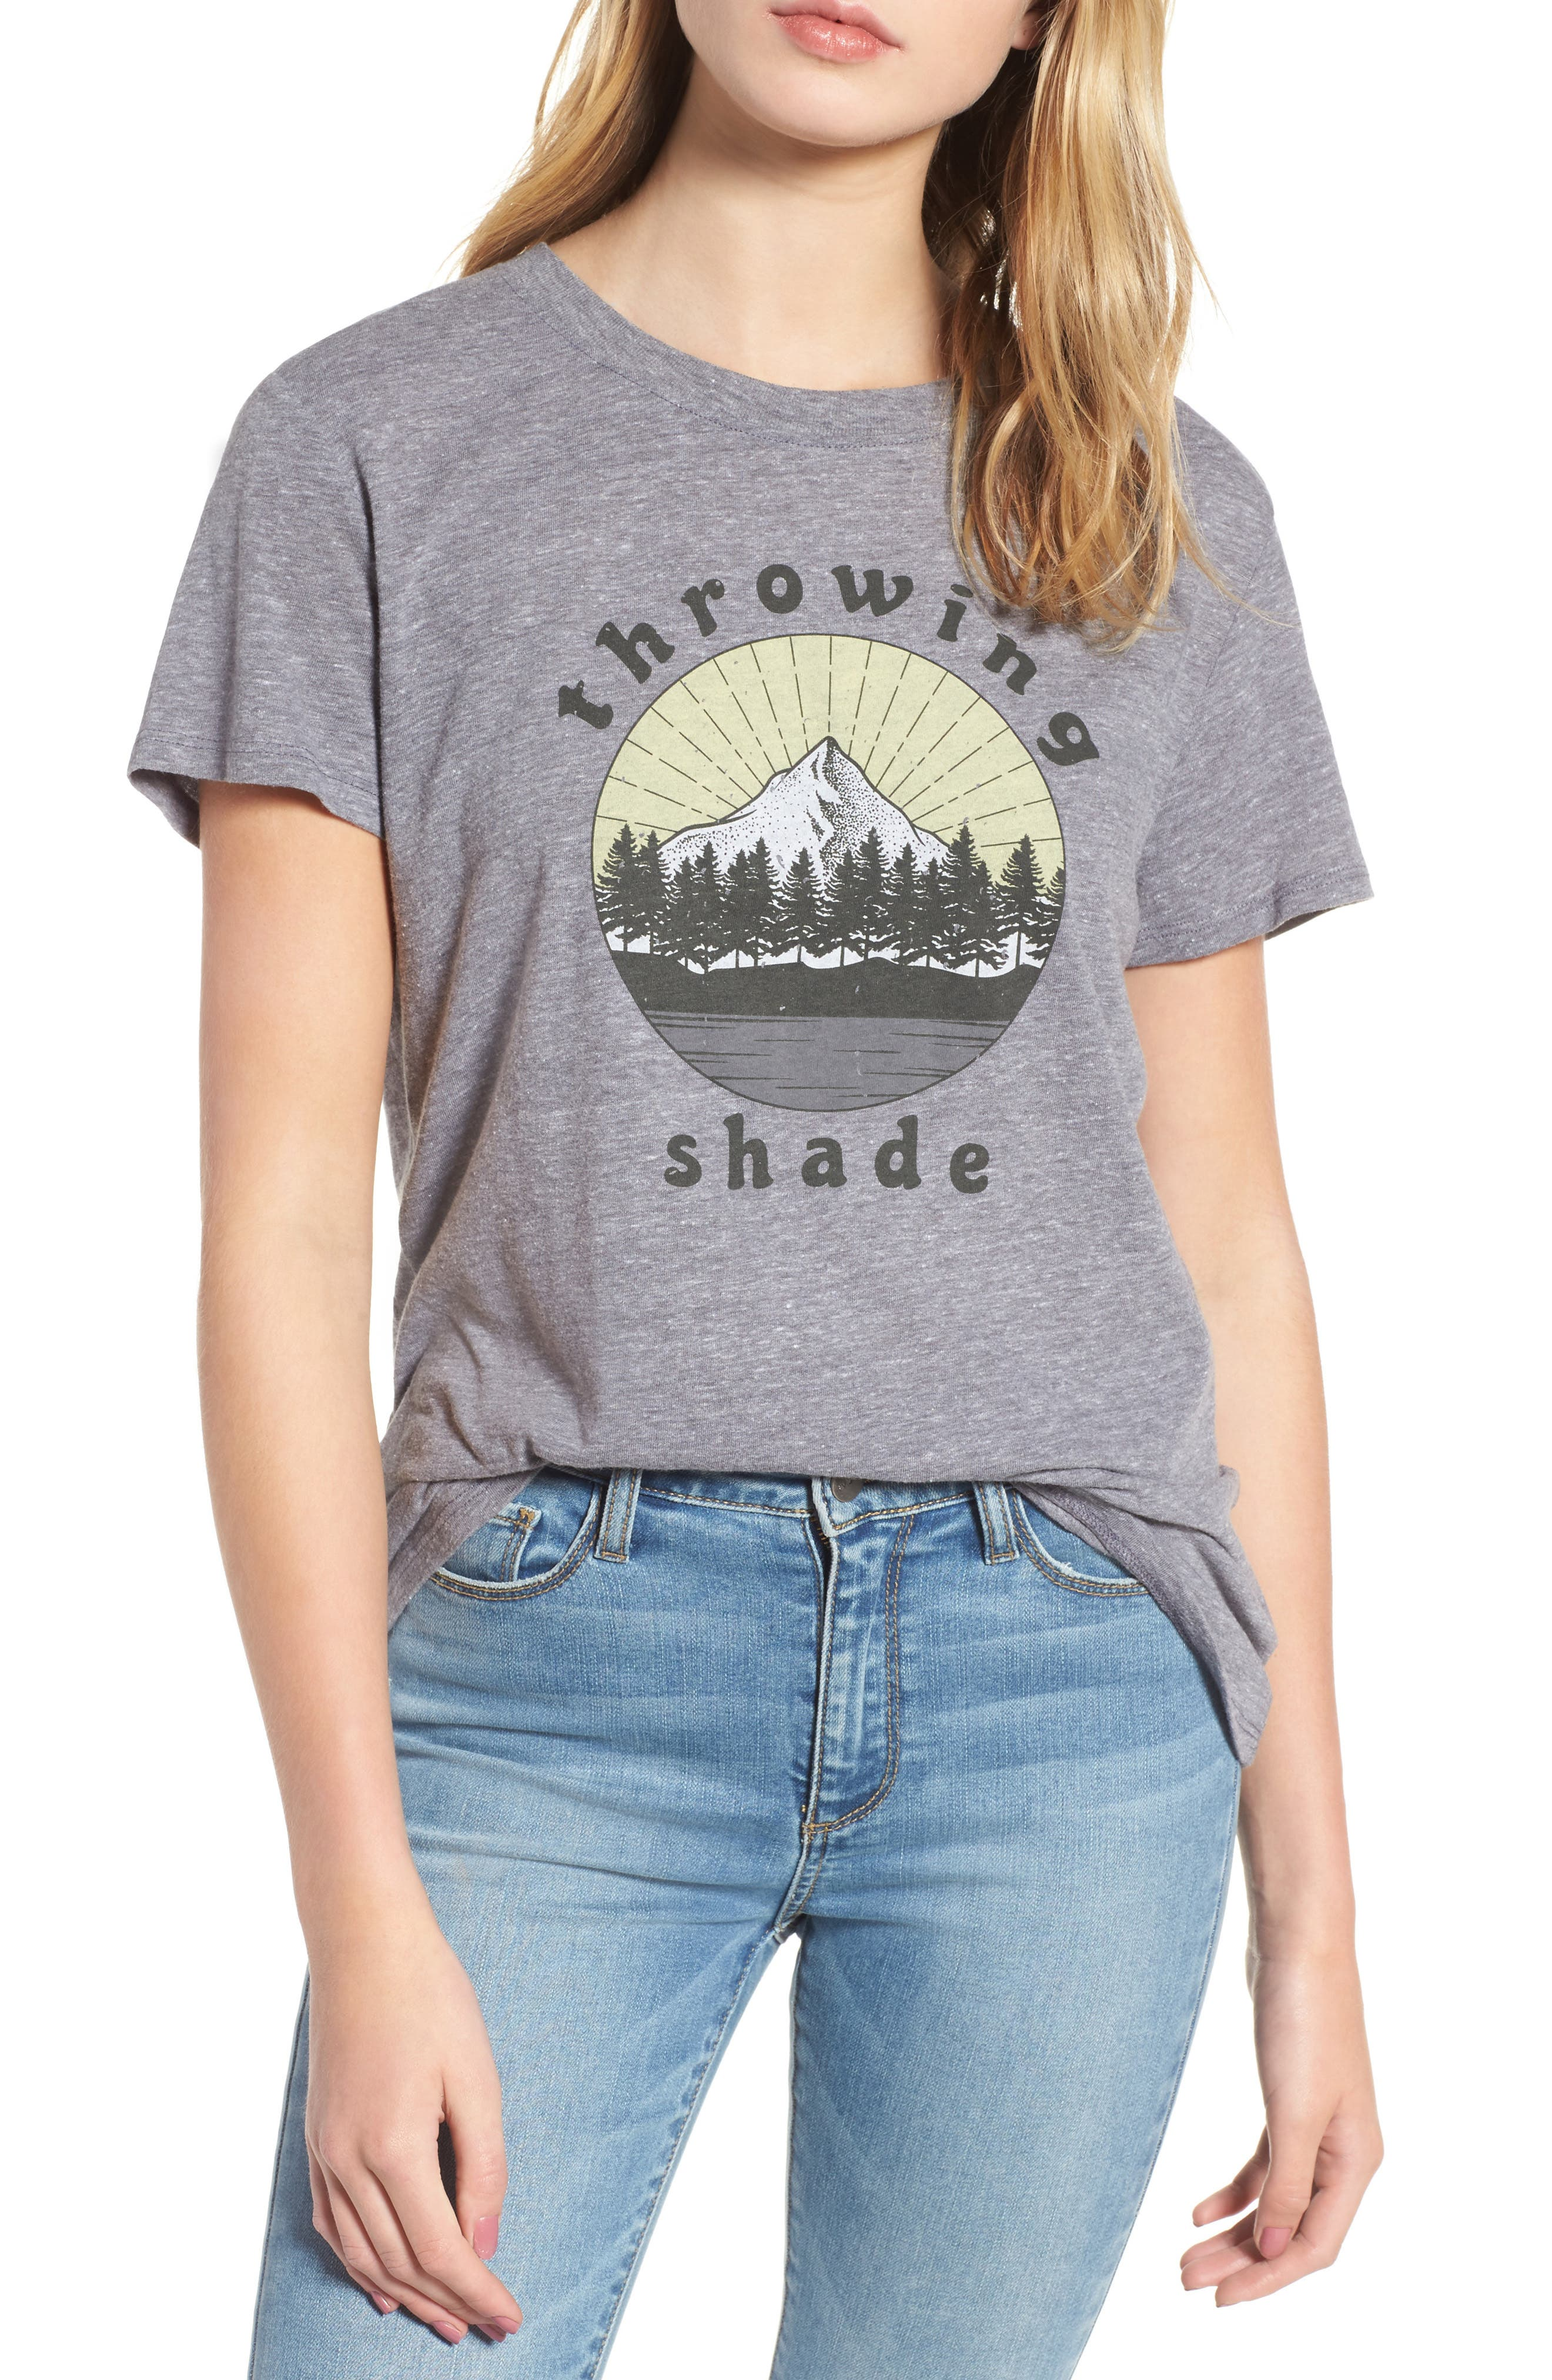 Throwing Shade Graphic Tee,                         Main,                         color, Heather Grey